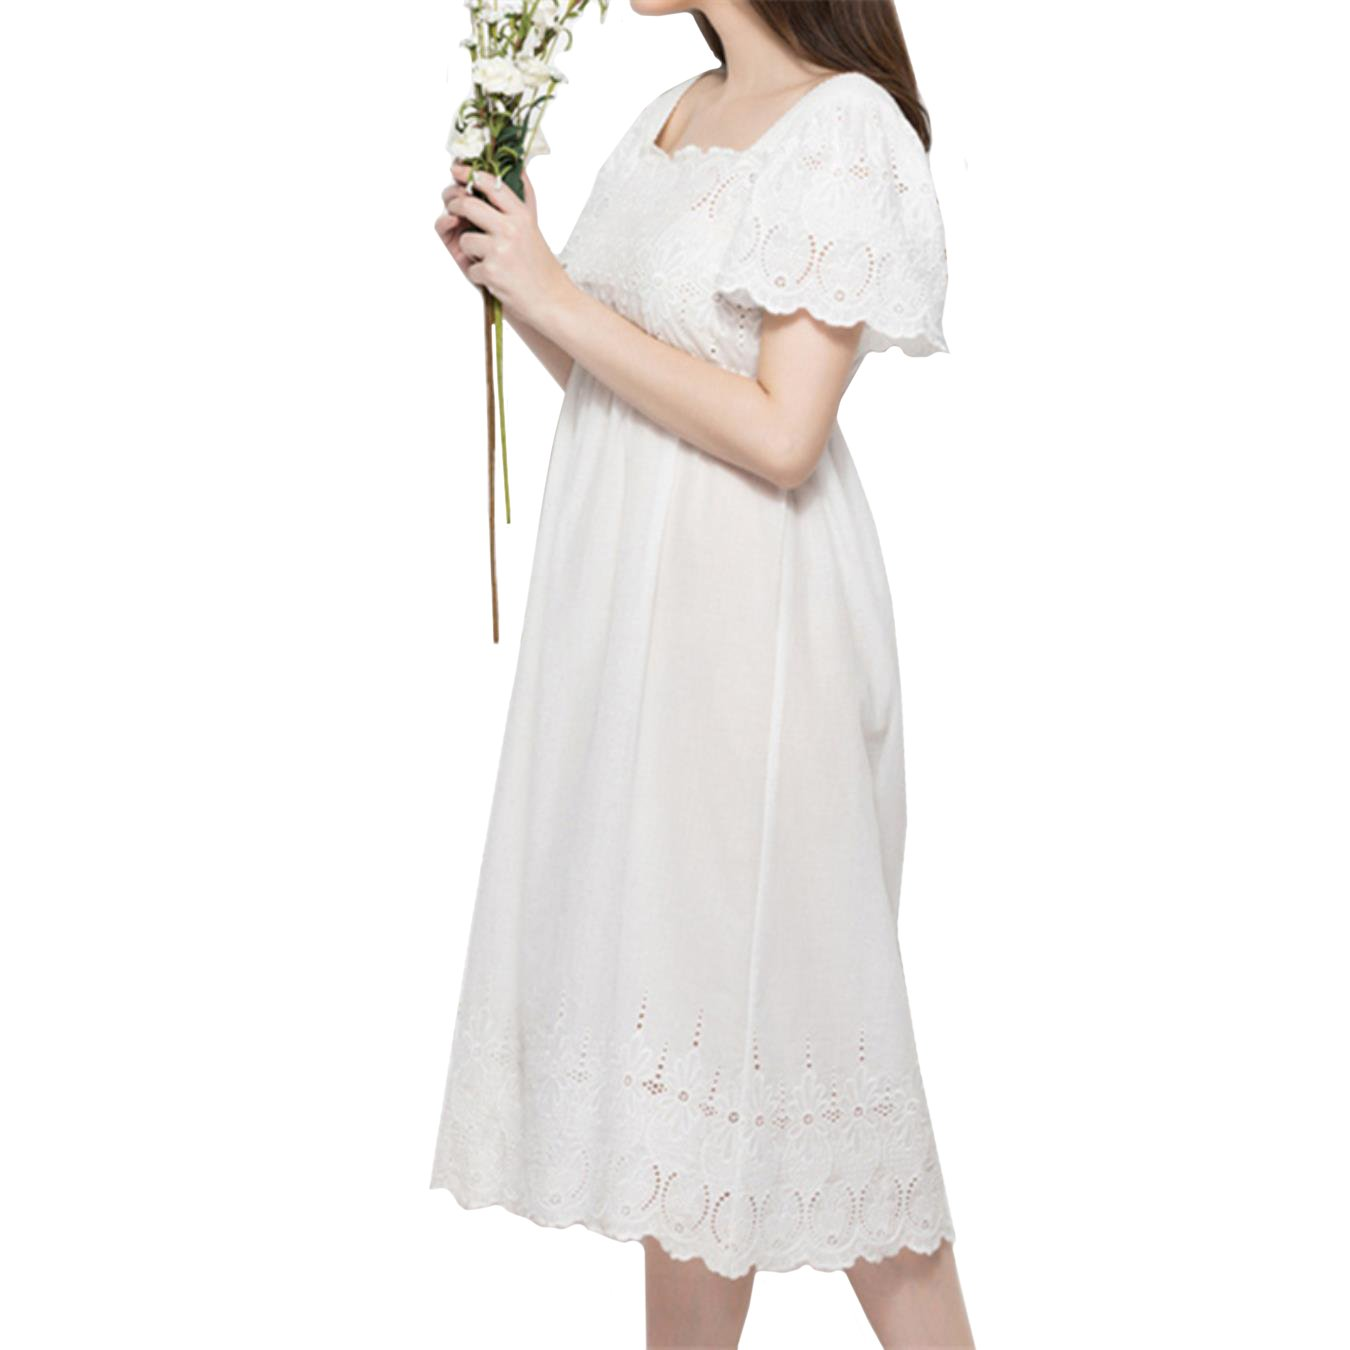 NCOEM Nightgowns Sleepshirts Solid White Home Dress Sleep Lounge Nightdress Lace Sleepwear Female Sleep Lounge